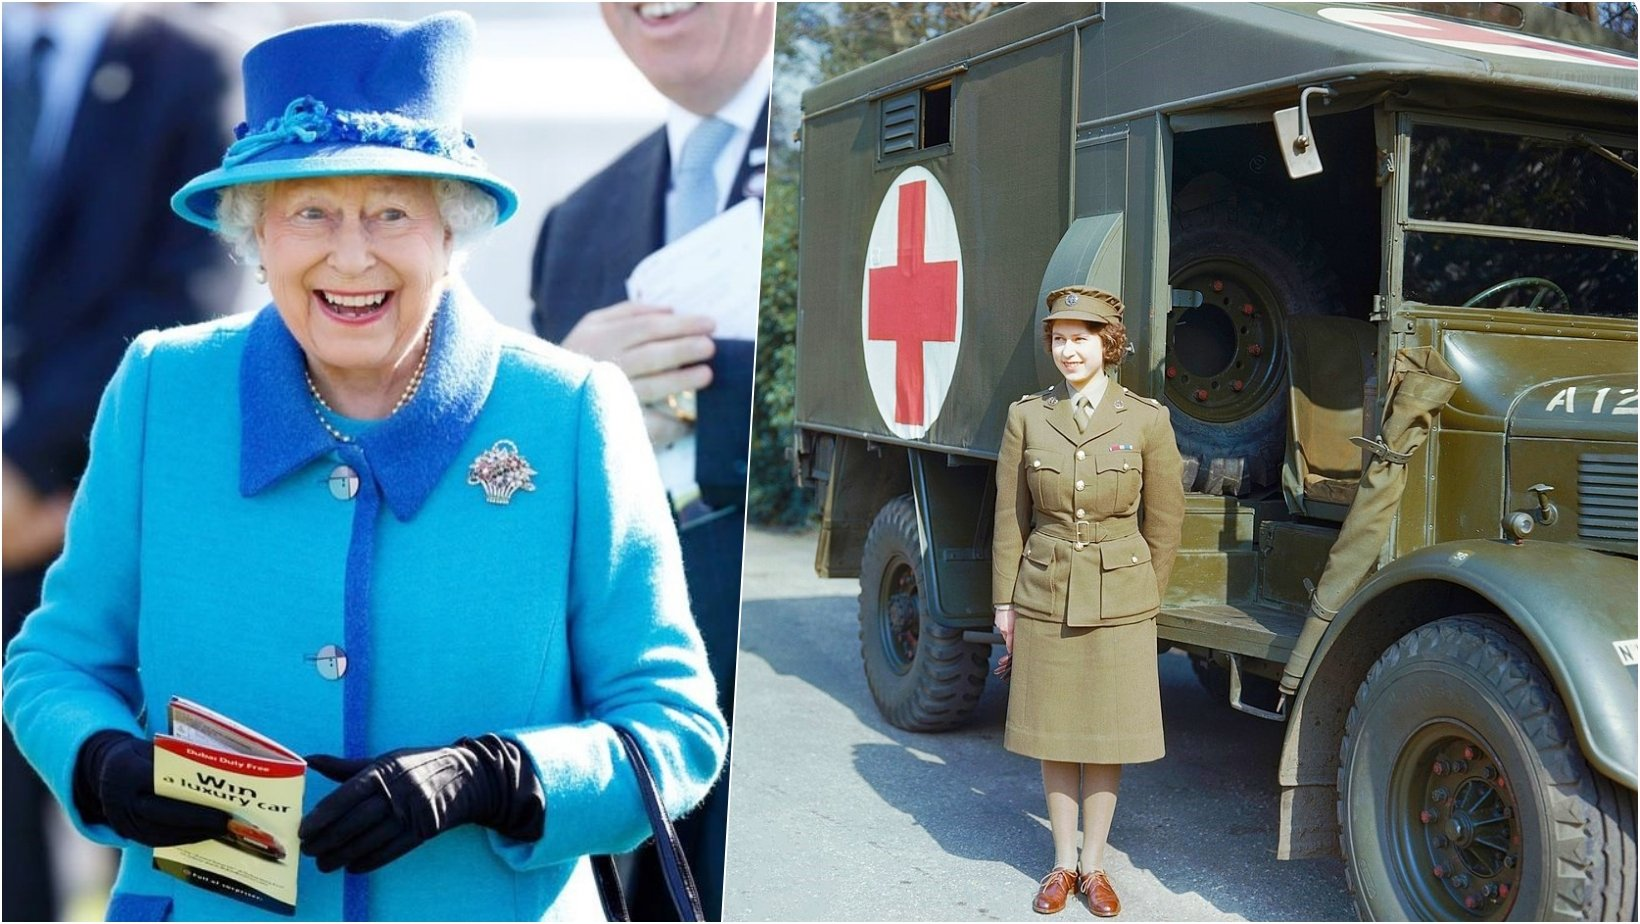 6 facebook cover 13.jpg?resize=1200,630 - The Queen's Real Name Has A Special Meaning, But The Reason Why She Rarely Uses It In Full Explains A Lot About Her Life As A Royal